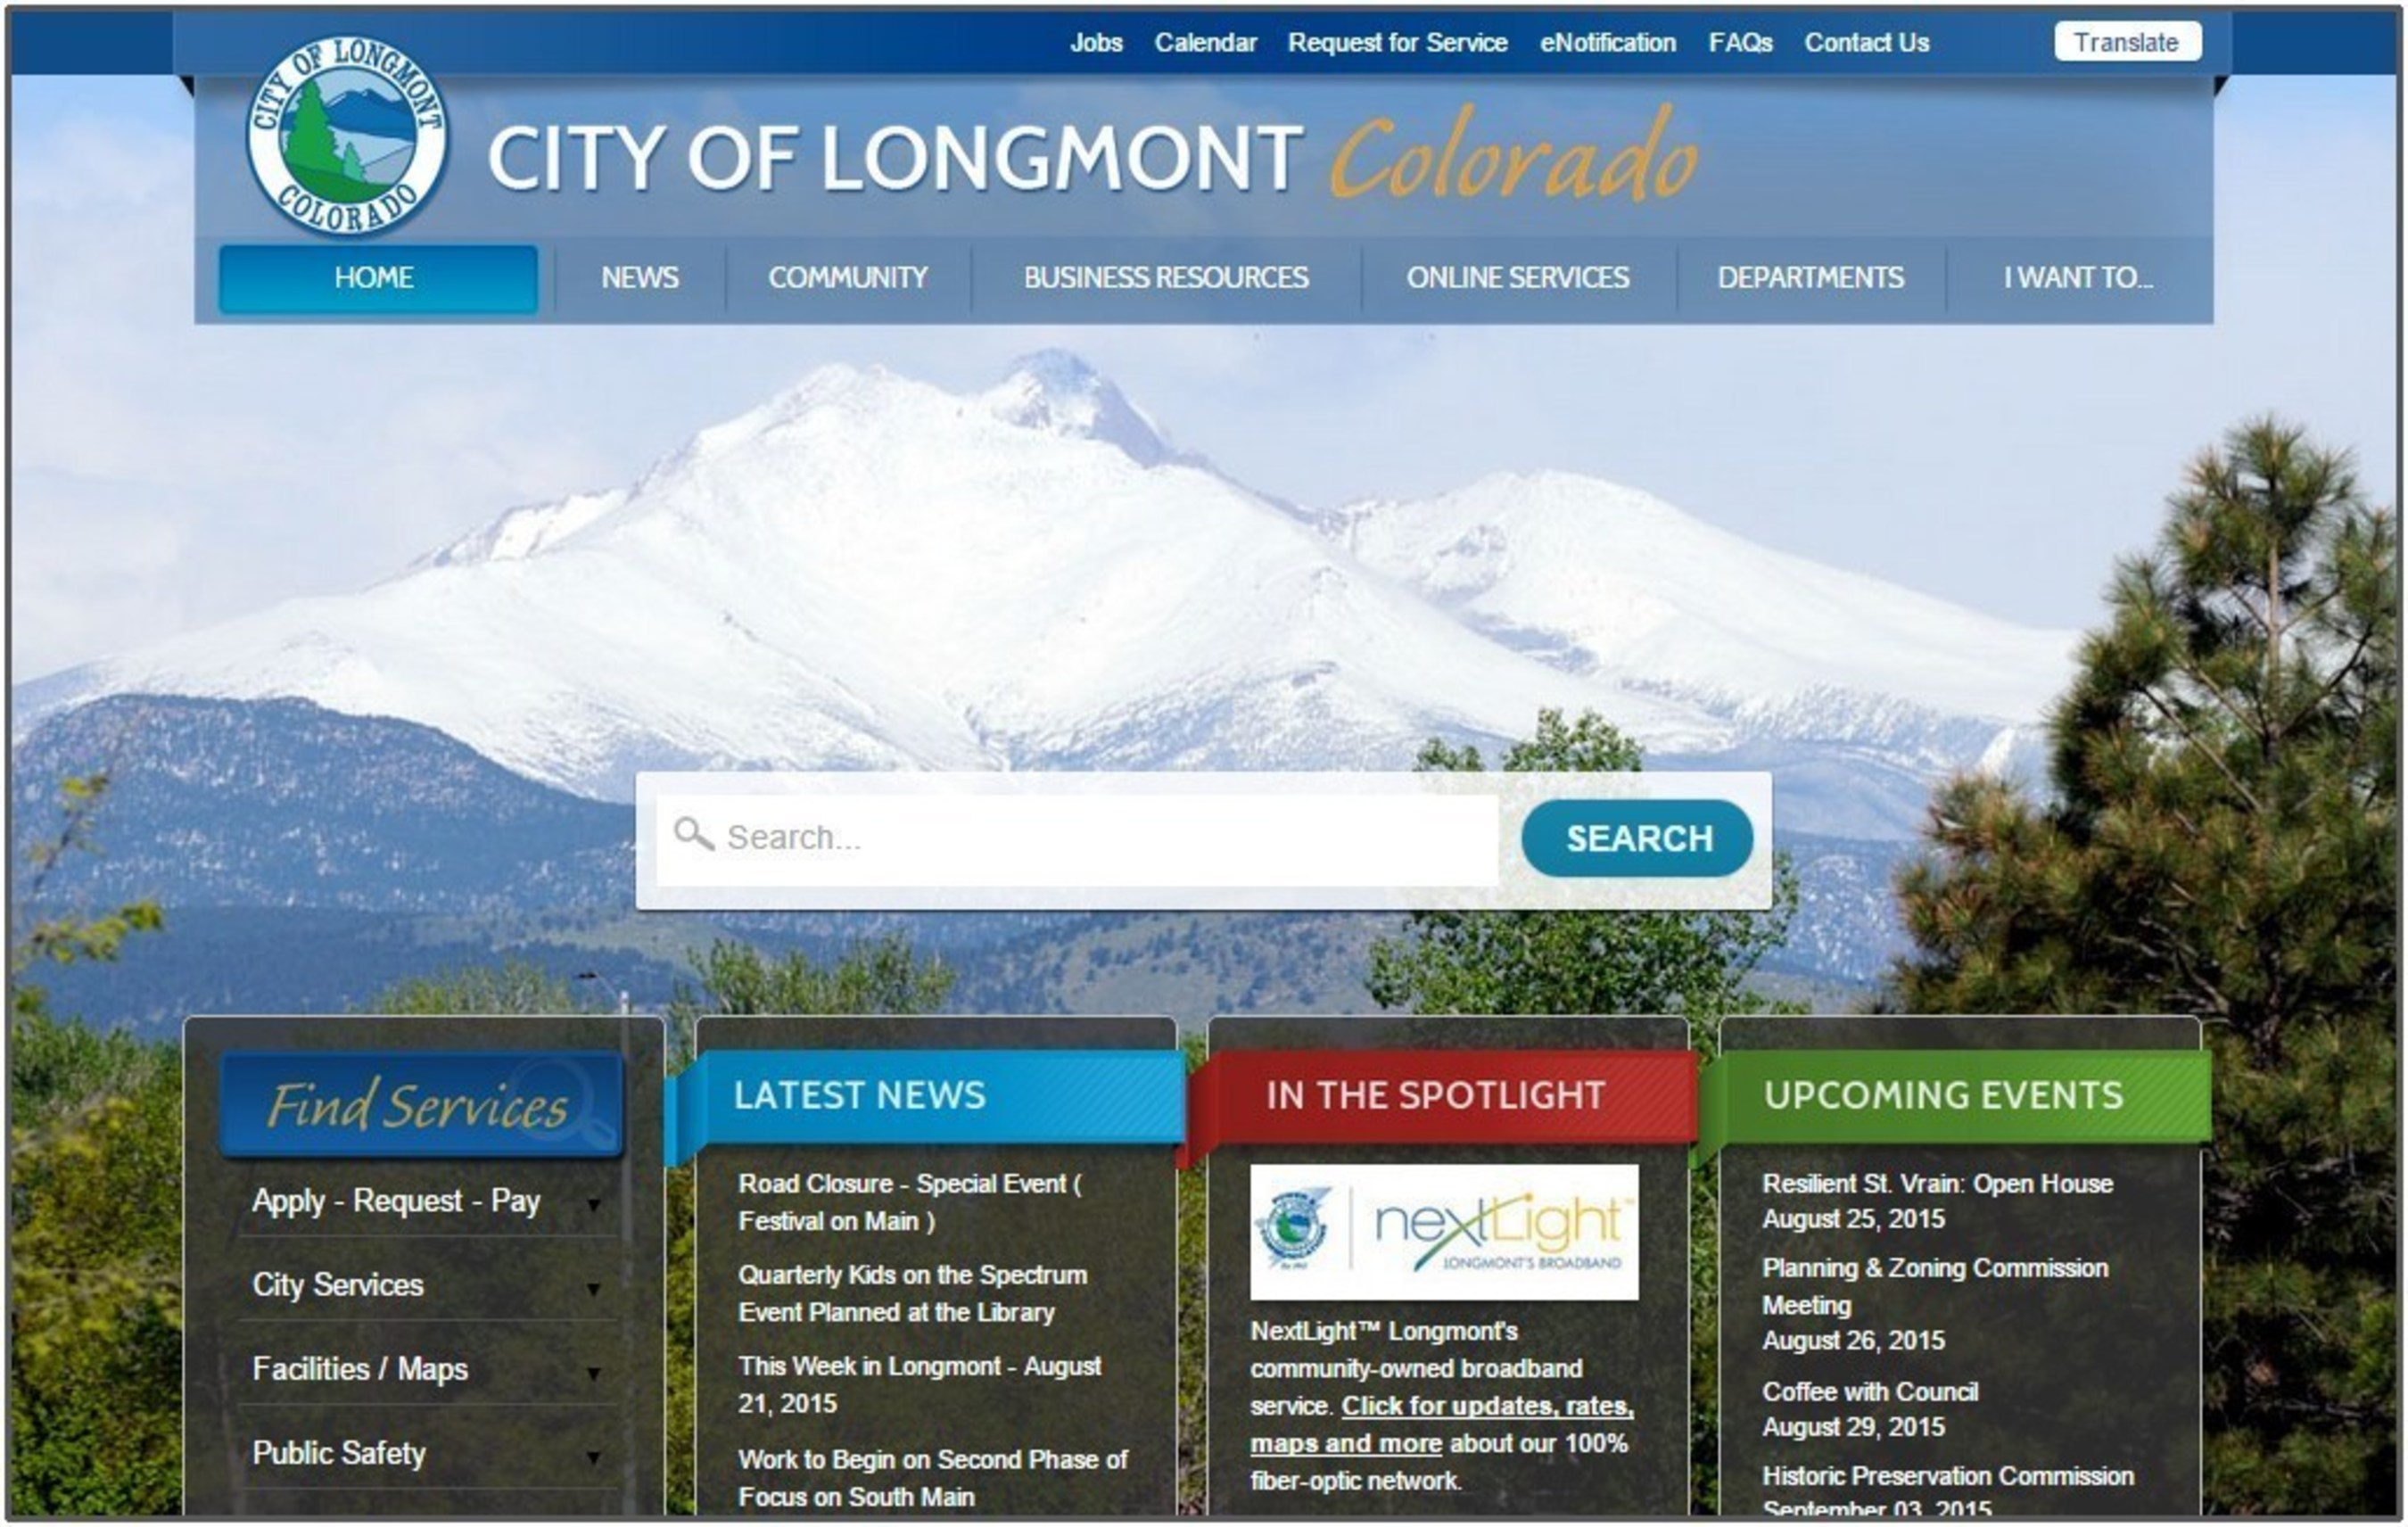 One Year After Website Overhaul, City of Longmont Reports Increase in Visitors